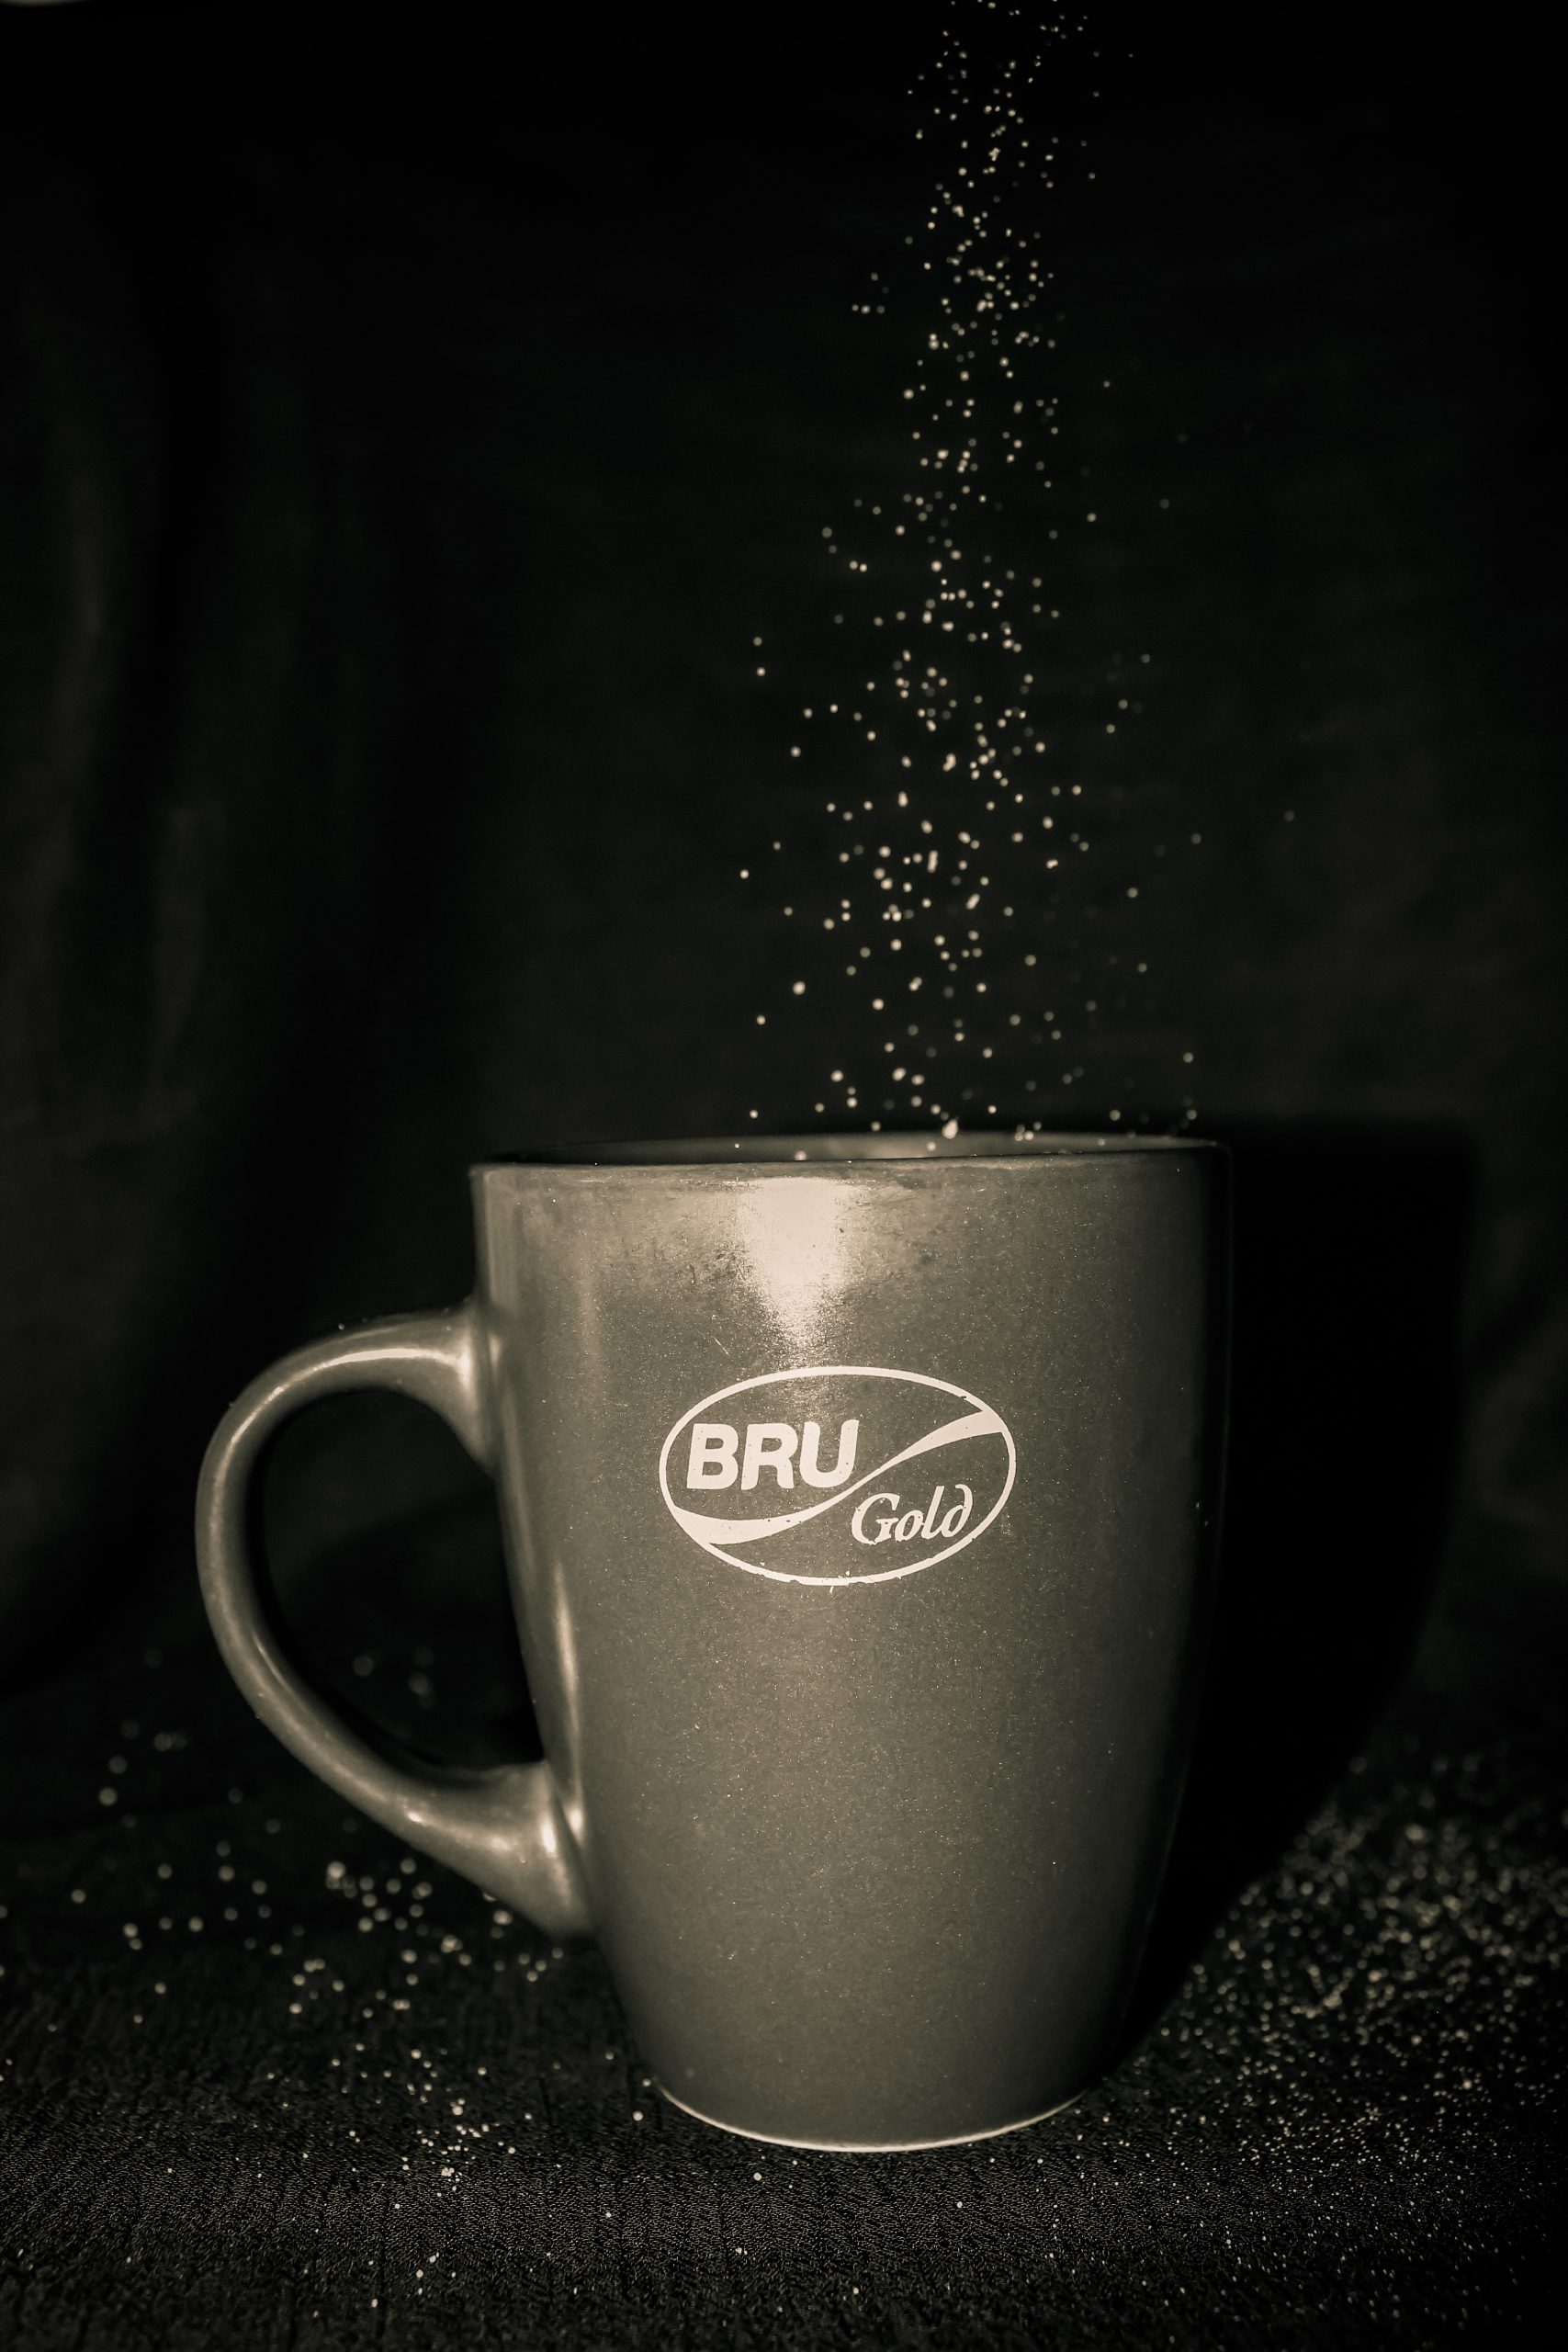 A cup of coffee